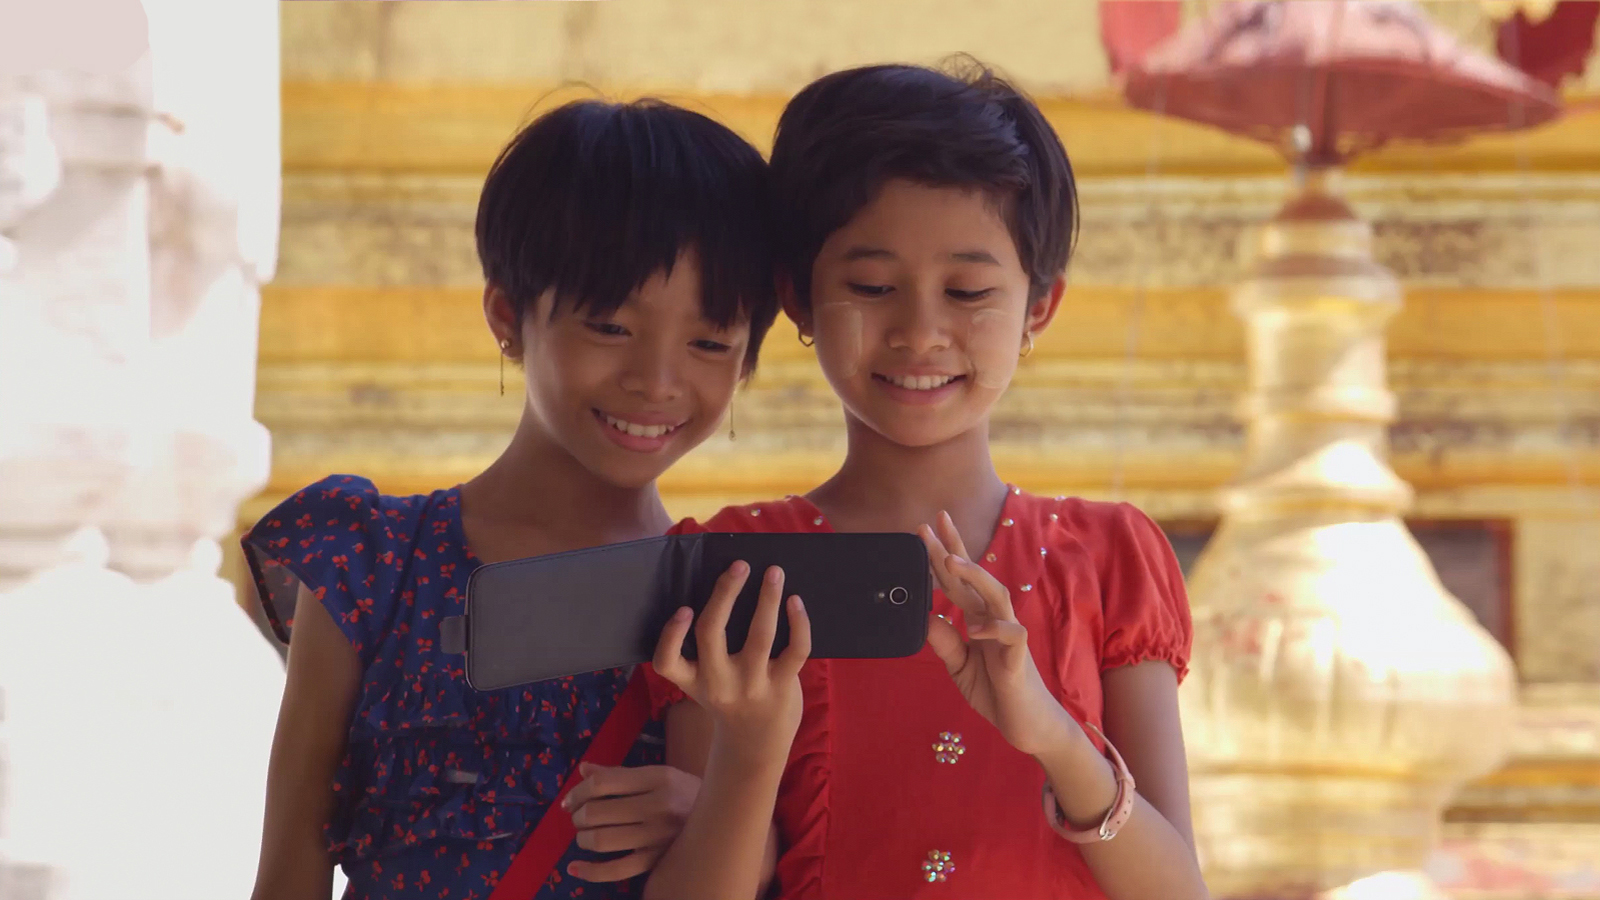 Two young girls looking at a phone together.